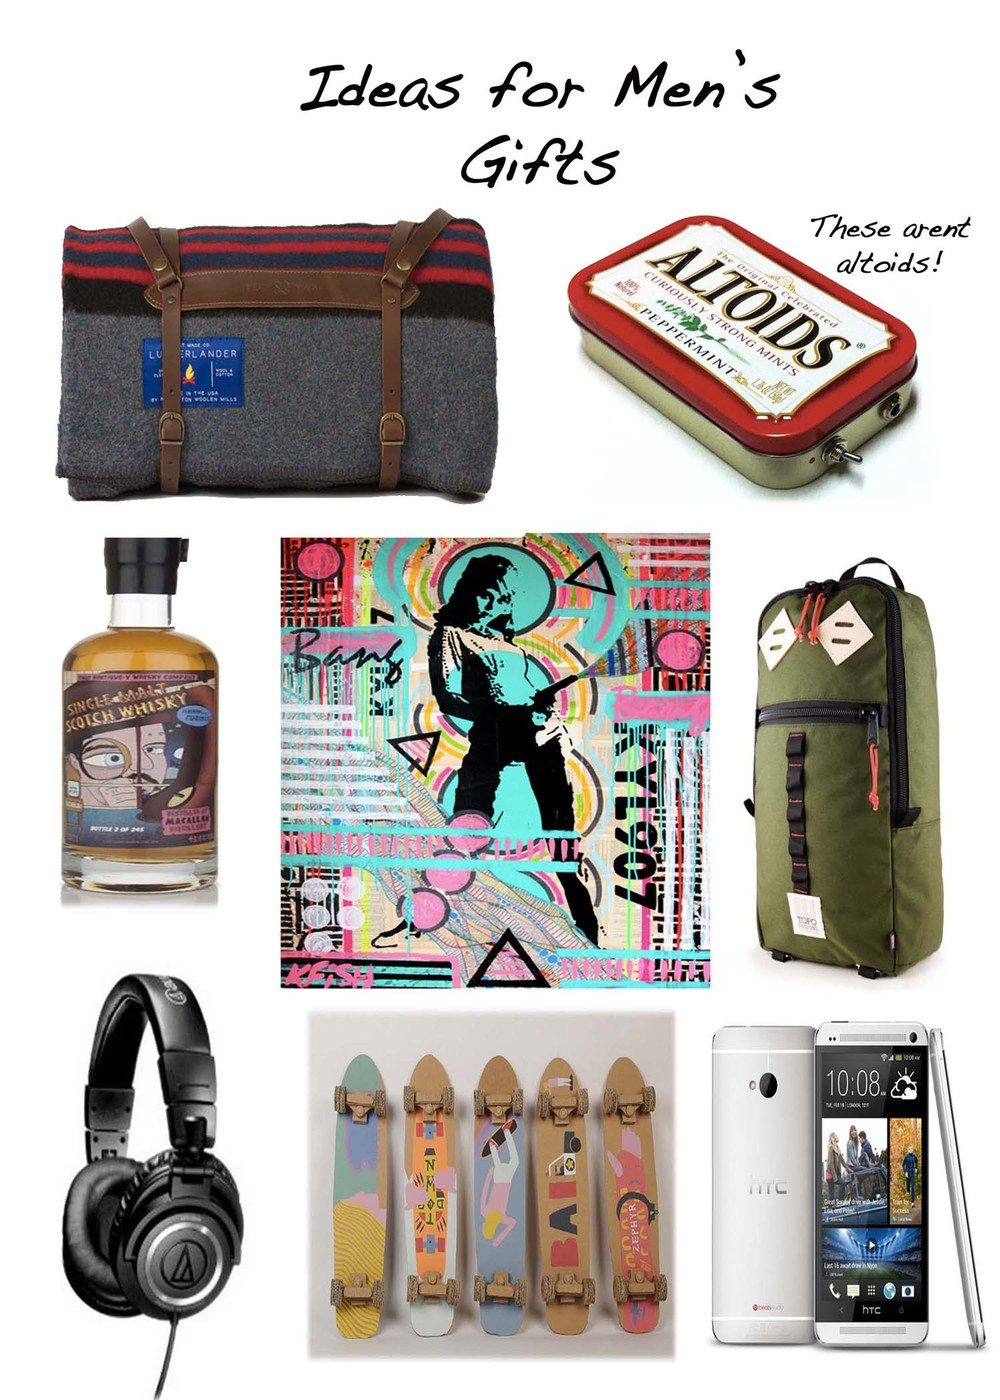 Blanket by Best Made Co Altoids Headphone Amp by Hesslerk Scotch by Master of Malt Originial Artwork by Kelcey Fisher Headphones by Audio Technica Skateboards by Dominic Owen HTC One Phone by HTC